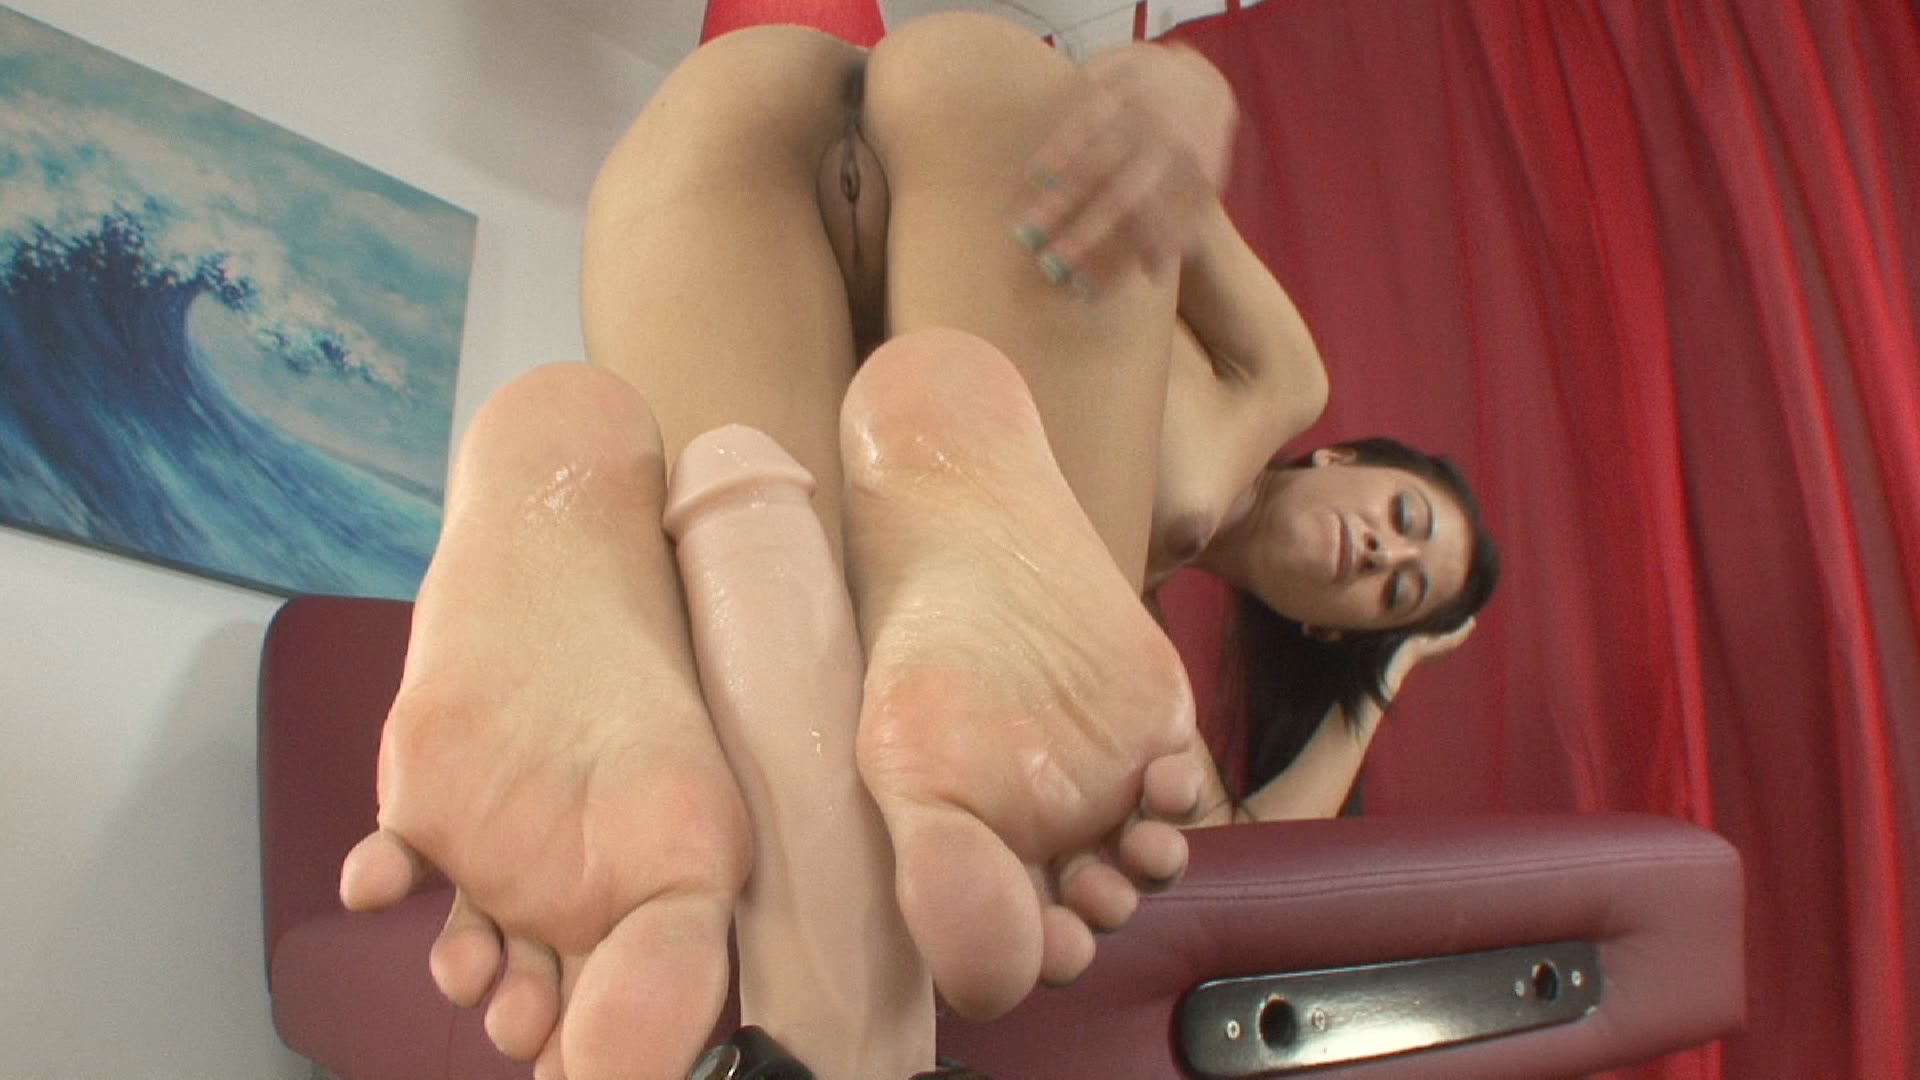 Virtual Footjobs